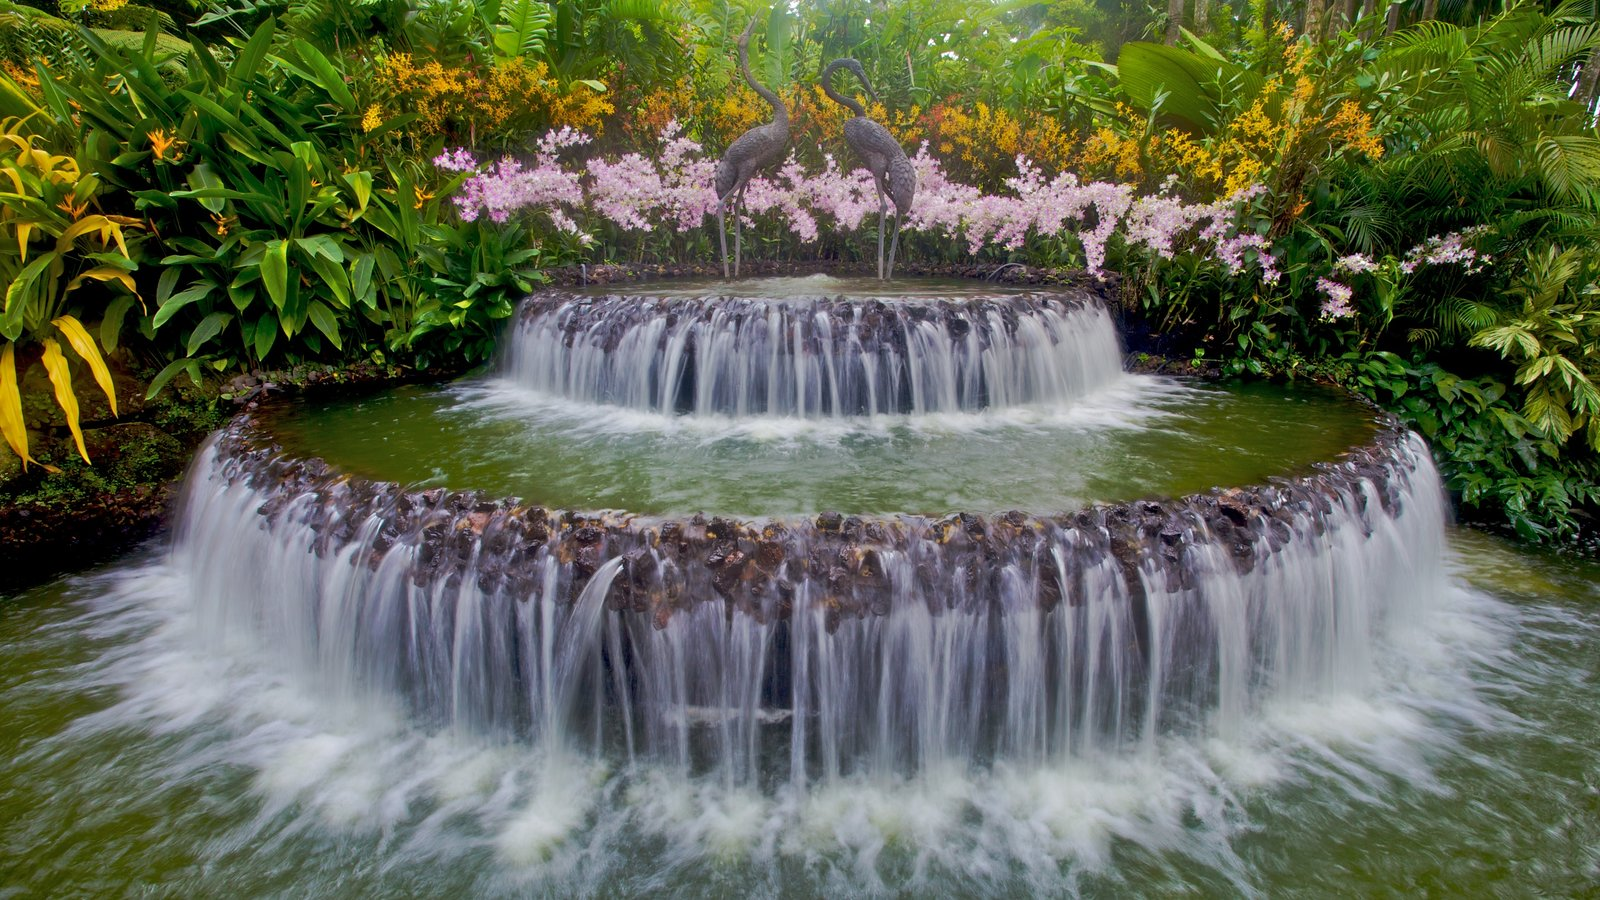 Waterfall At Singapore Botanic Garden The Is A Major Visitor Attraction In